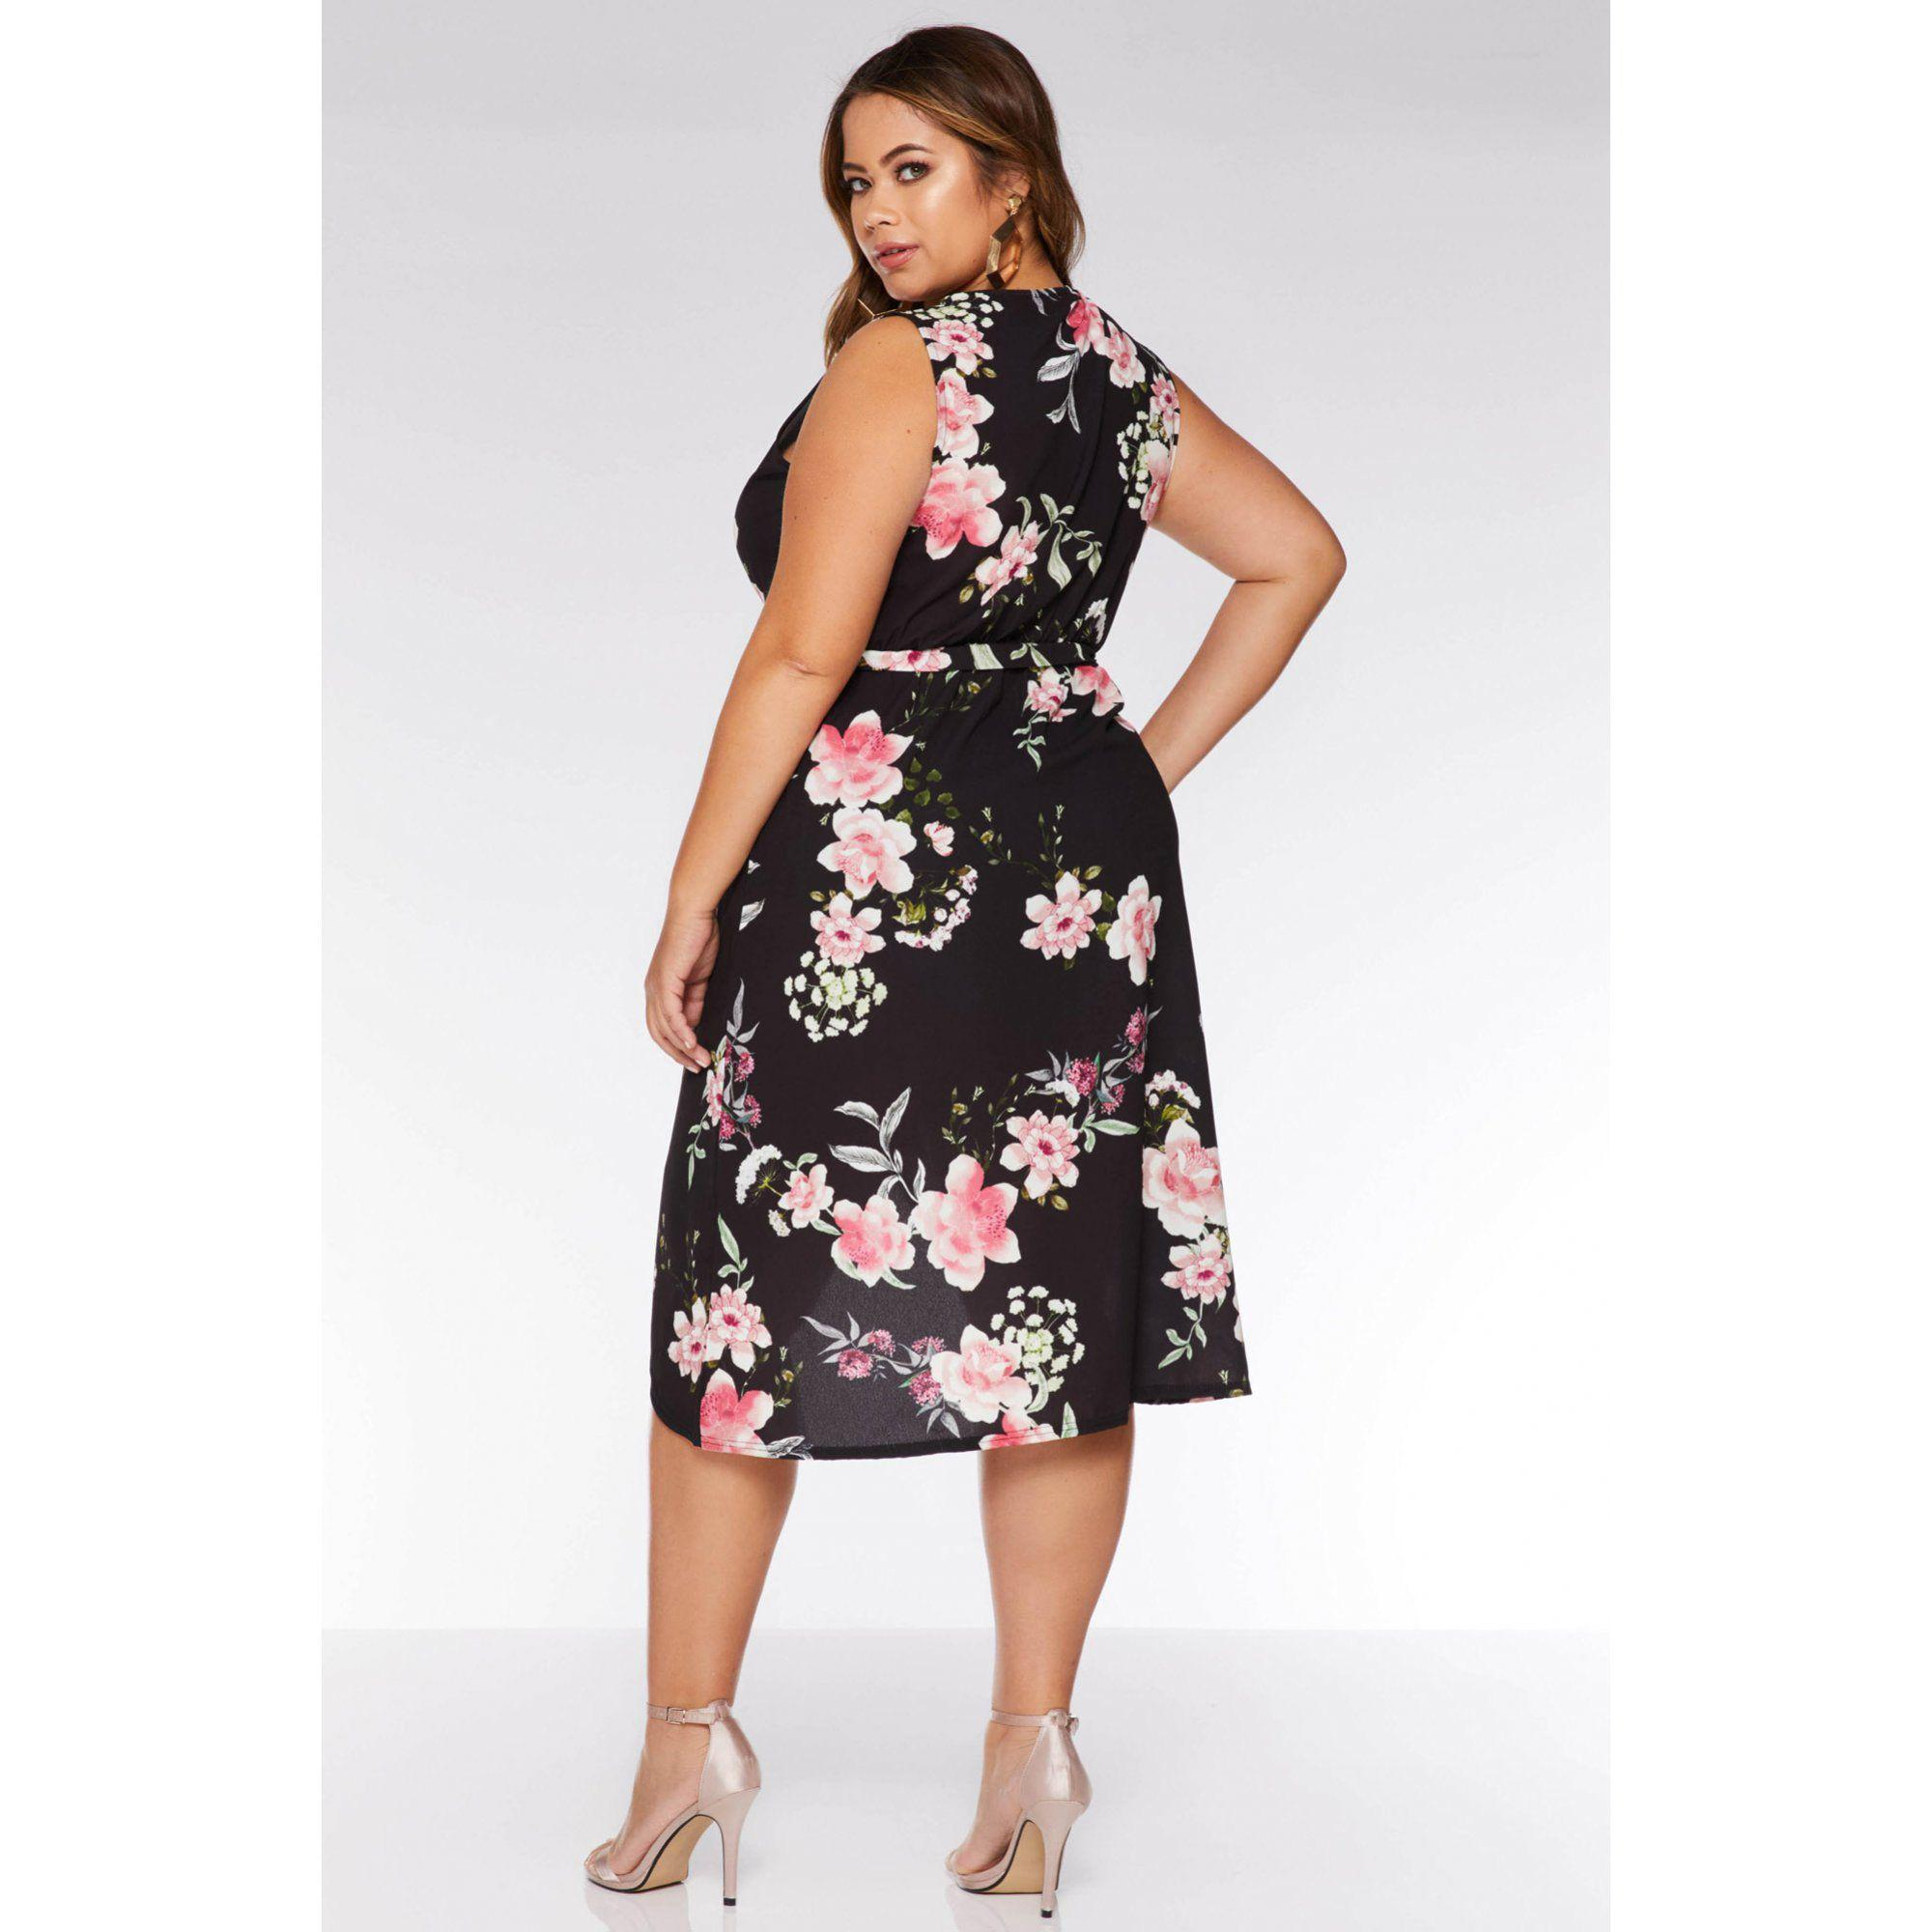 a9a03ff562 Quiz - Curve Crepe Black Floral Wrap Dress - Lyst. View fullscreen